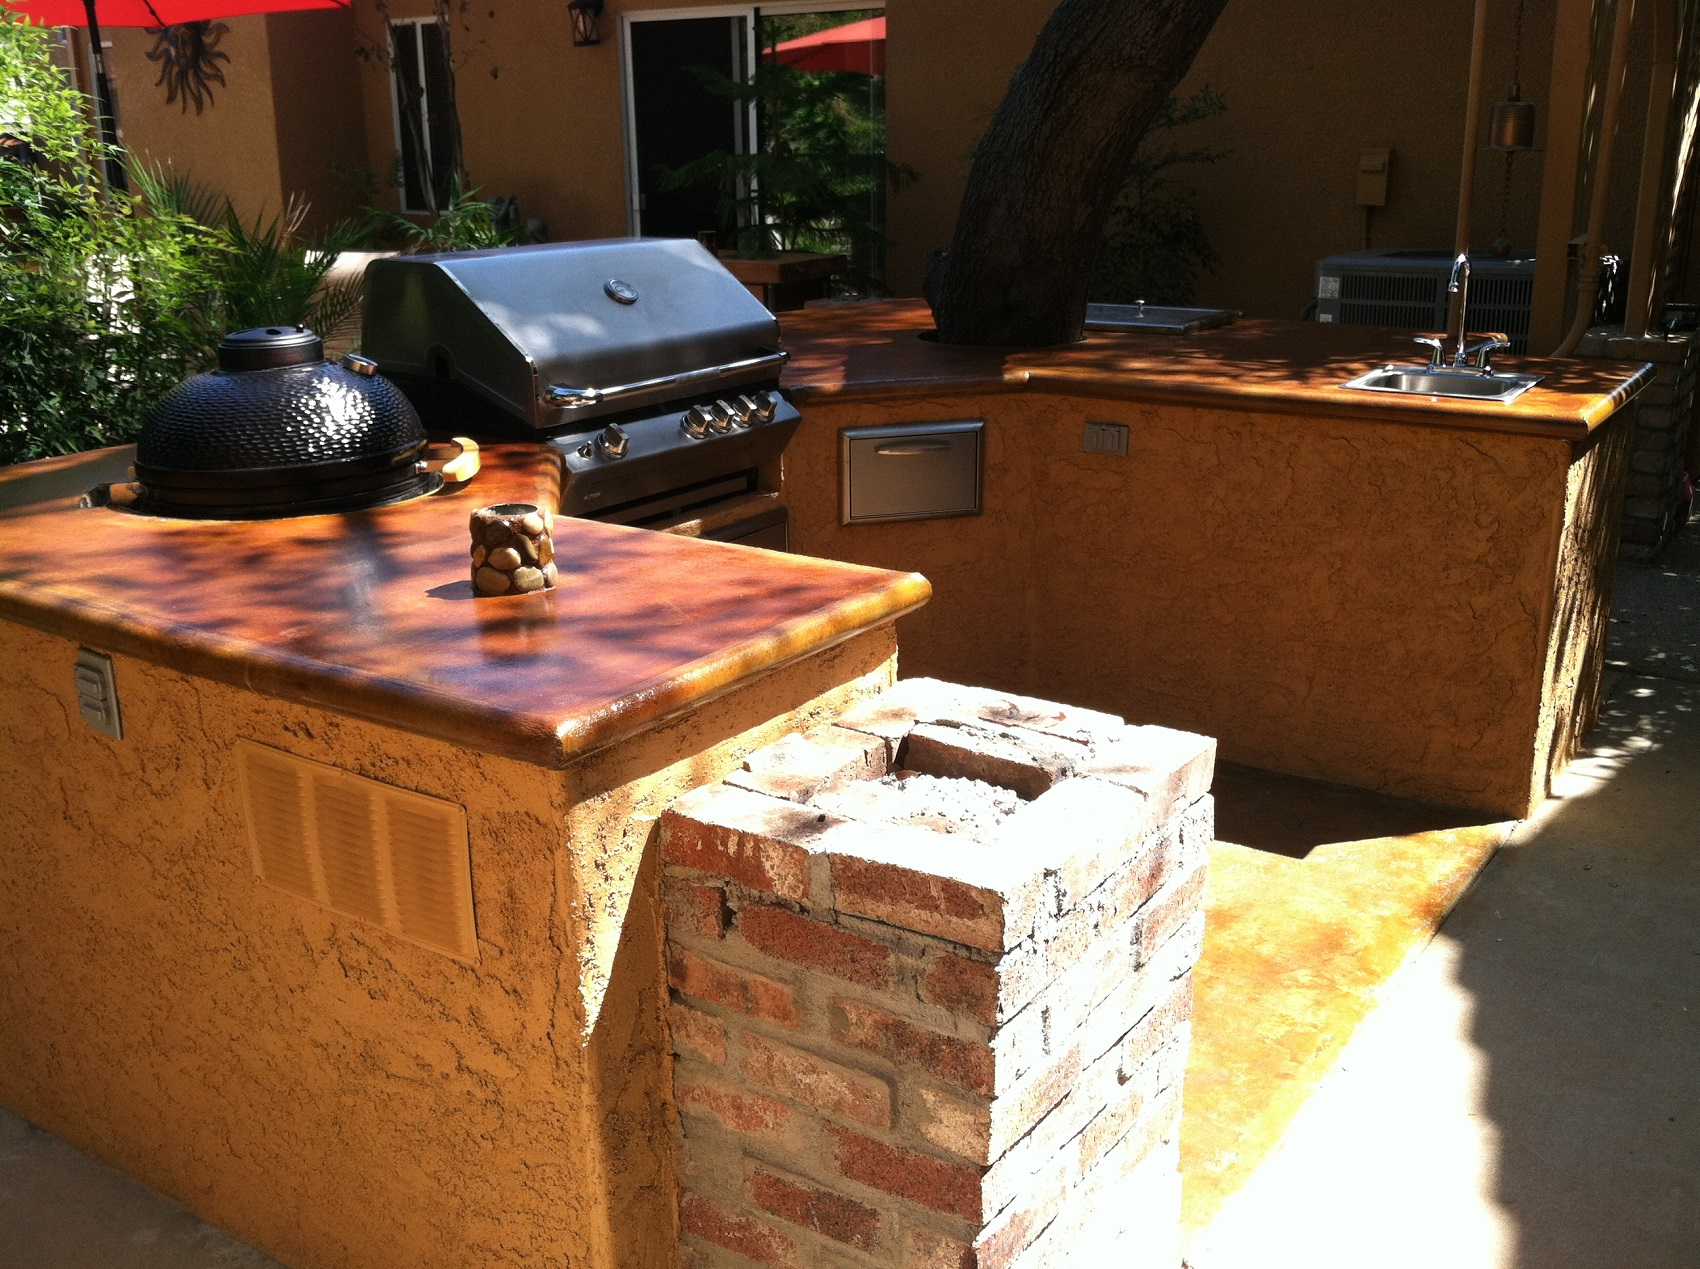 Design by project: Outdoor Concrete Kitchen Countertop From Start to Finish